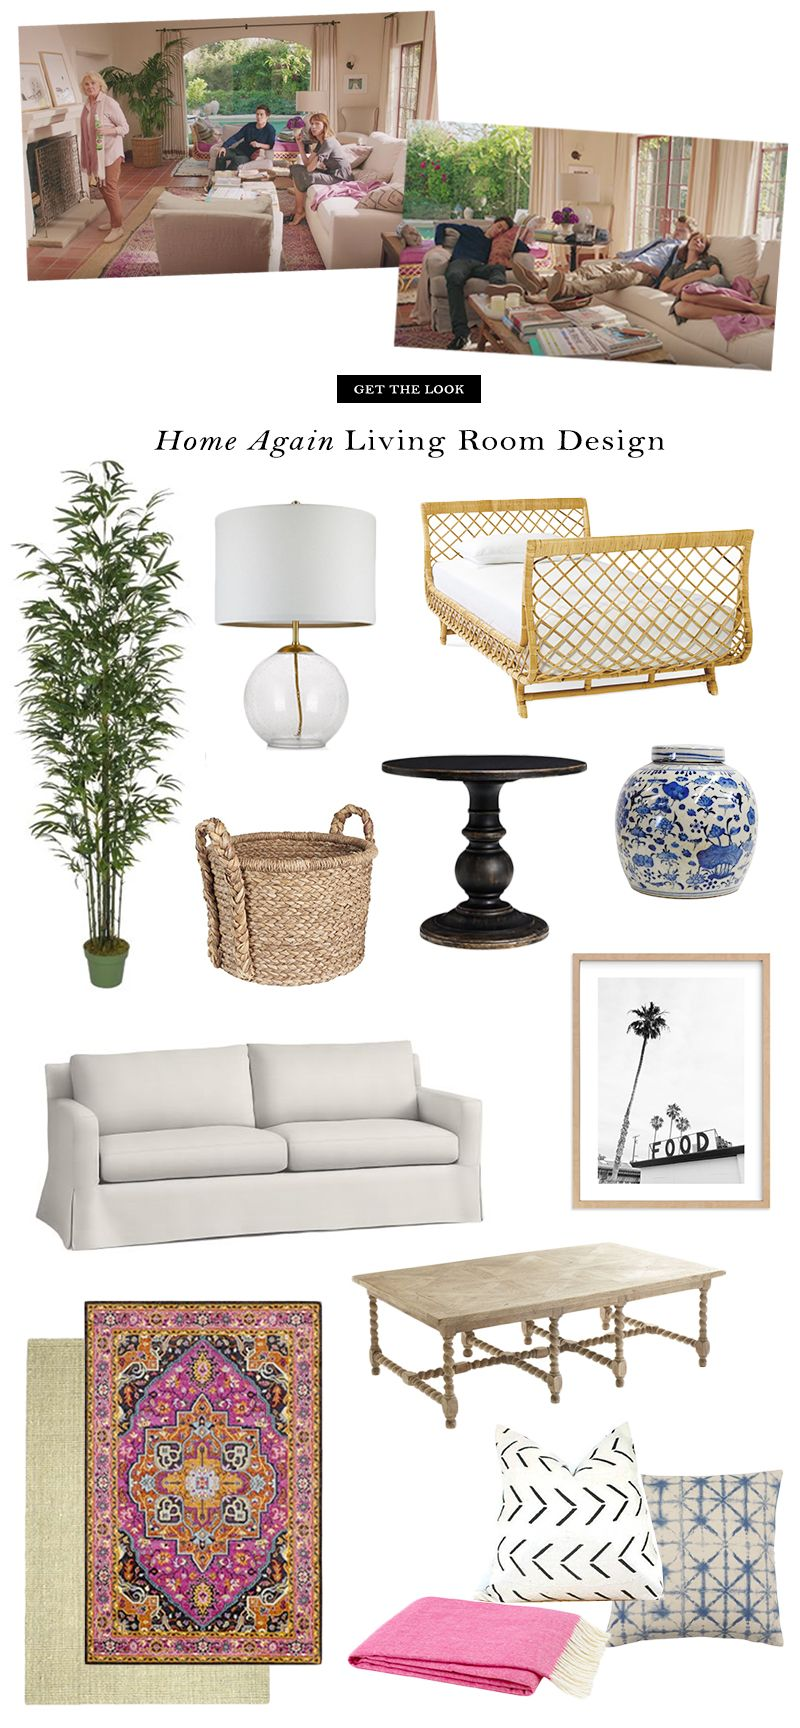 Store Exterieur Nancy Set Designs And Get The Look Of The New Nancy Meyers Movie Home